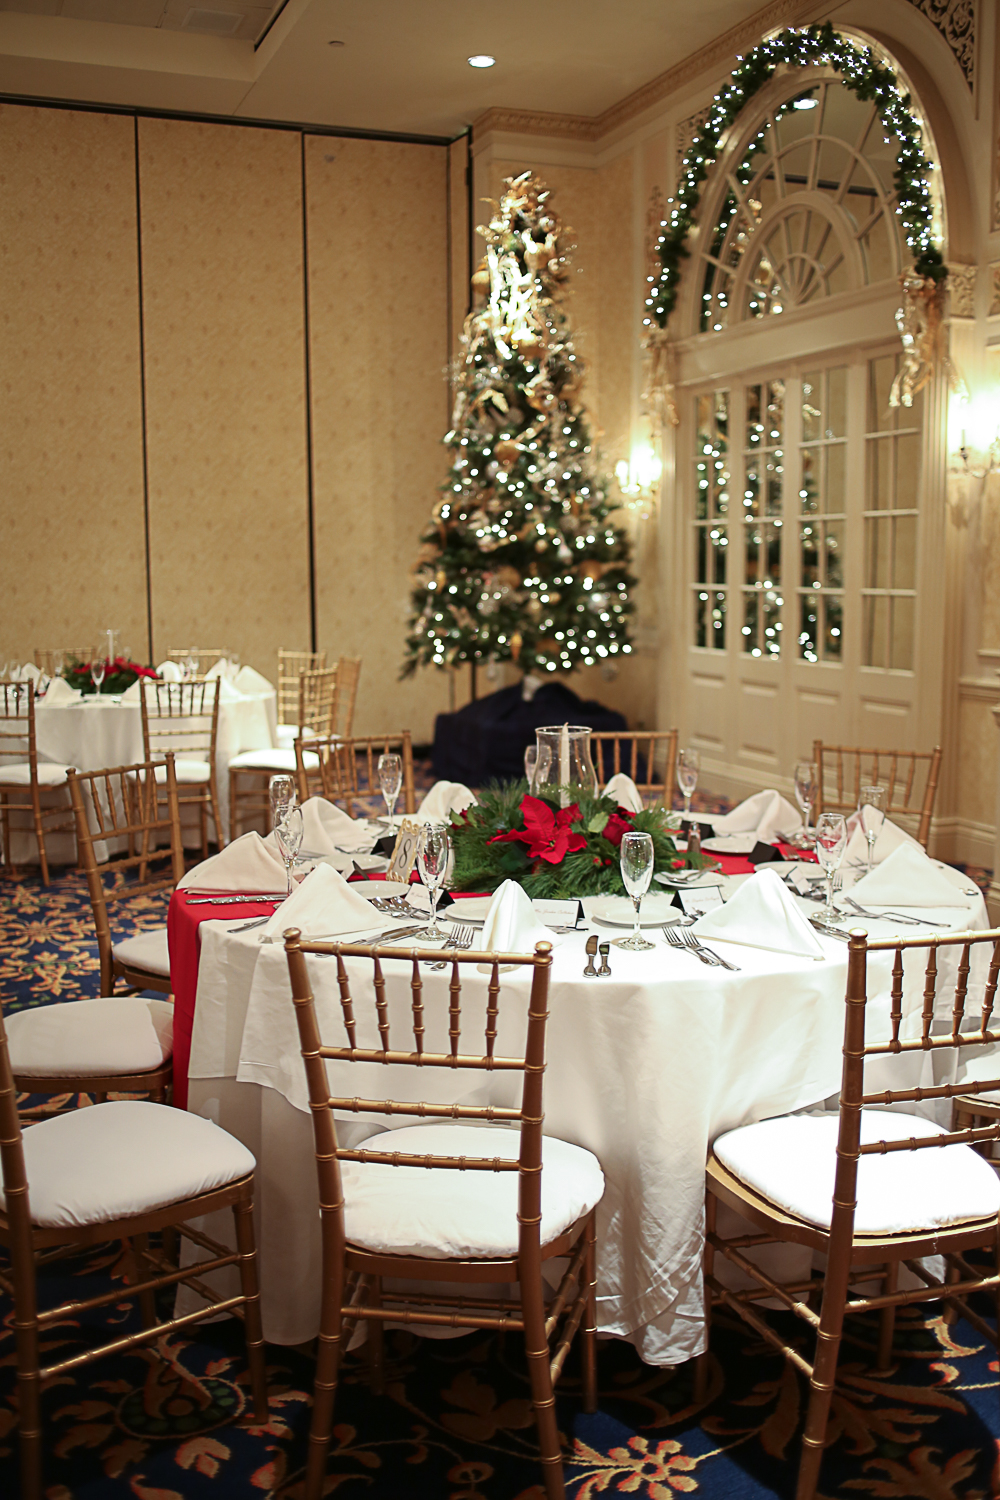 Christmas Themed Wedding at Hotel Roanoke | Roanoke, Virginia Wedding Photographer